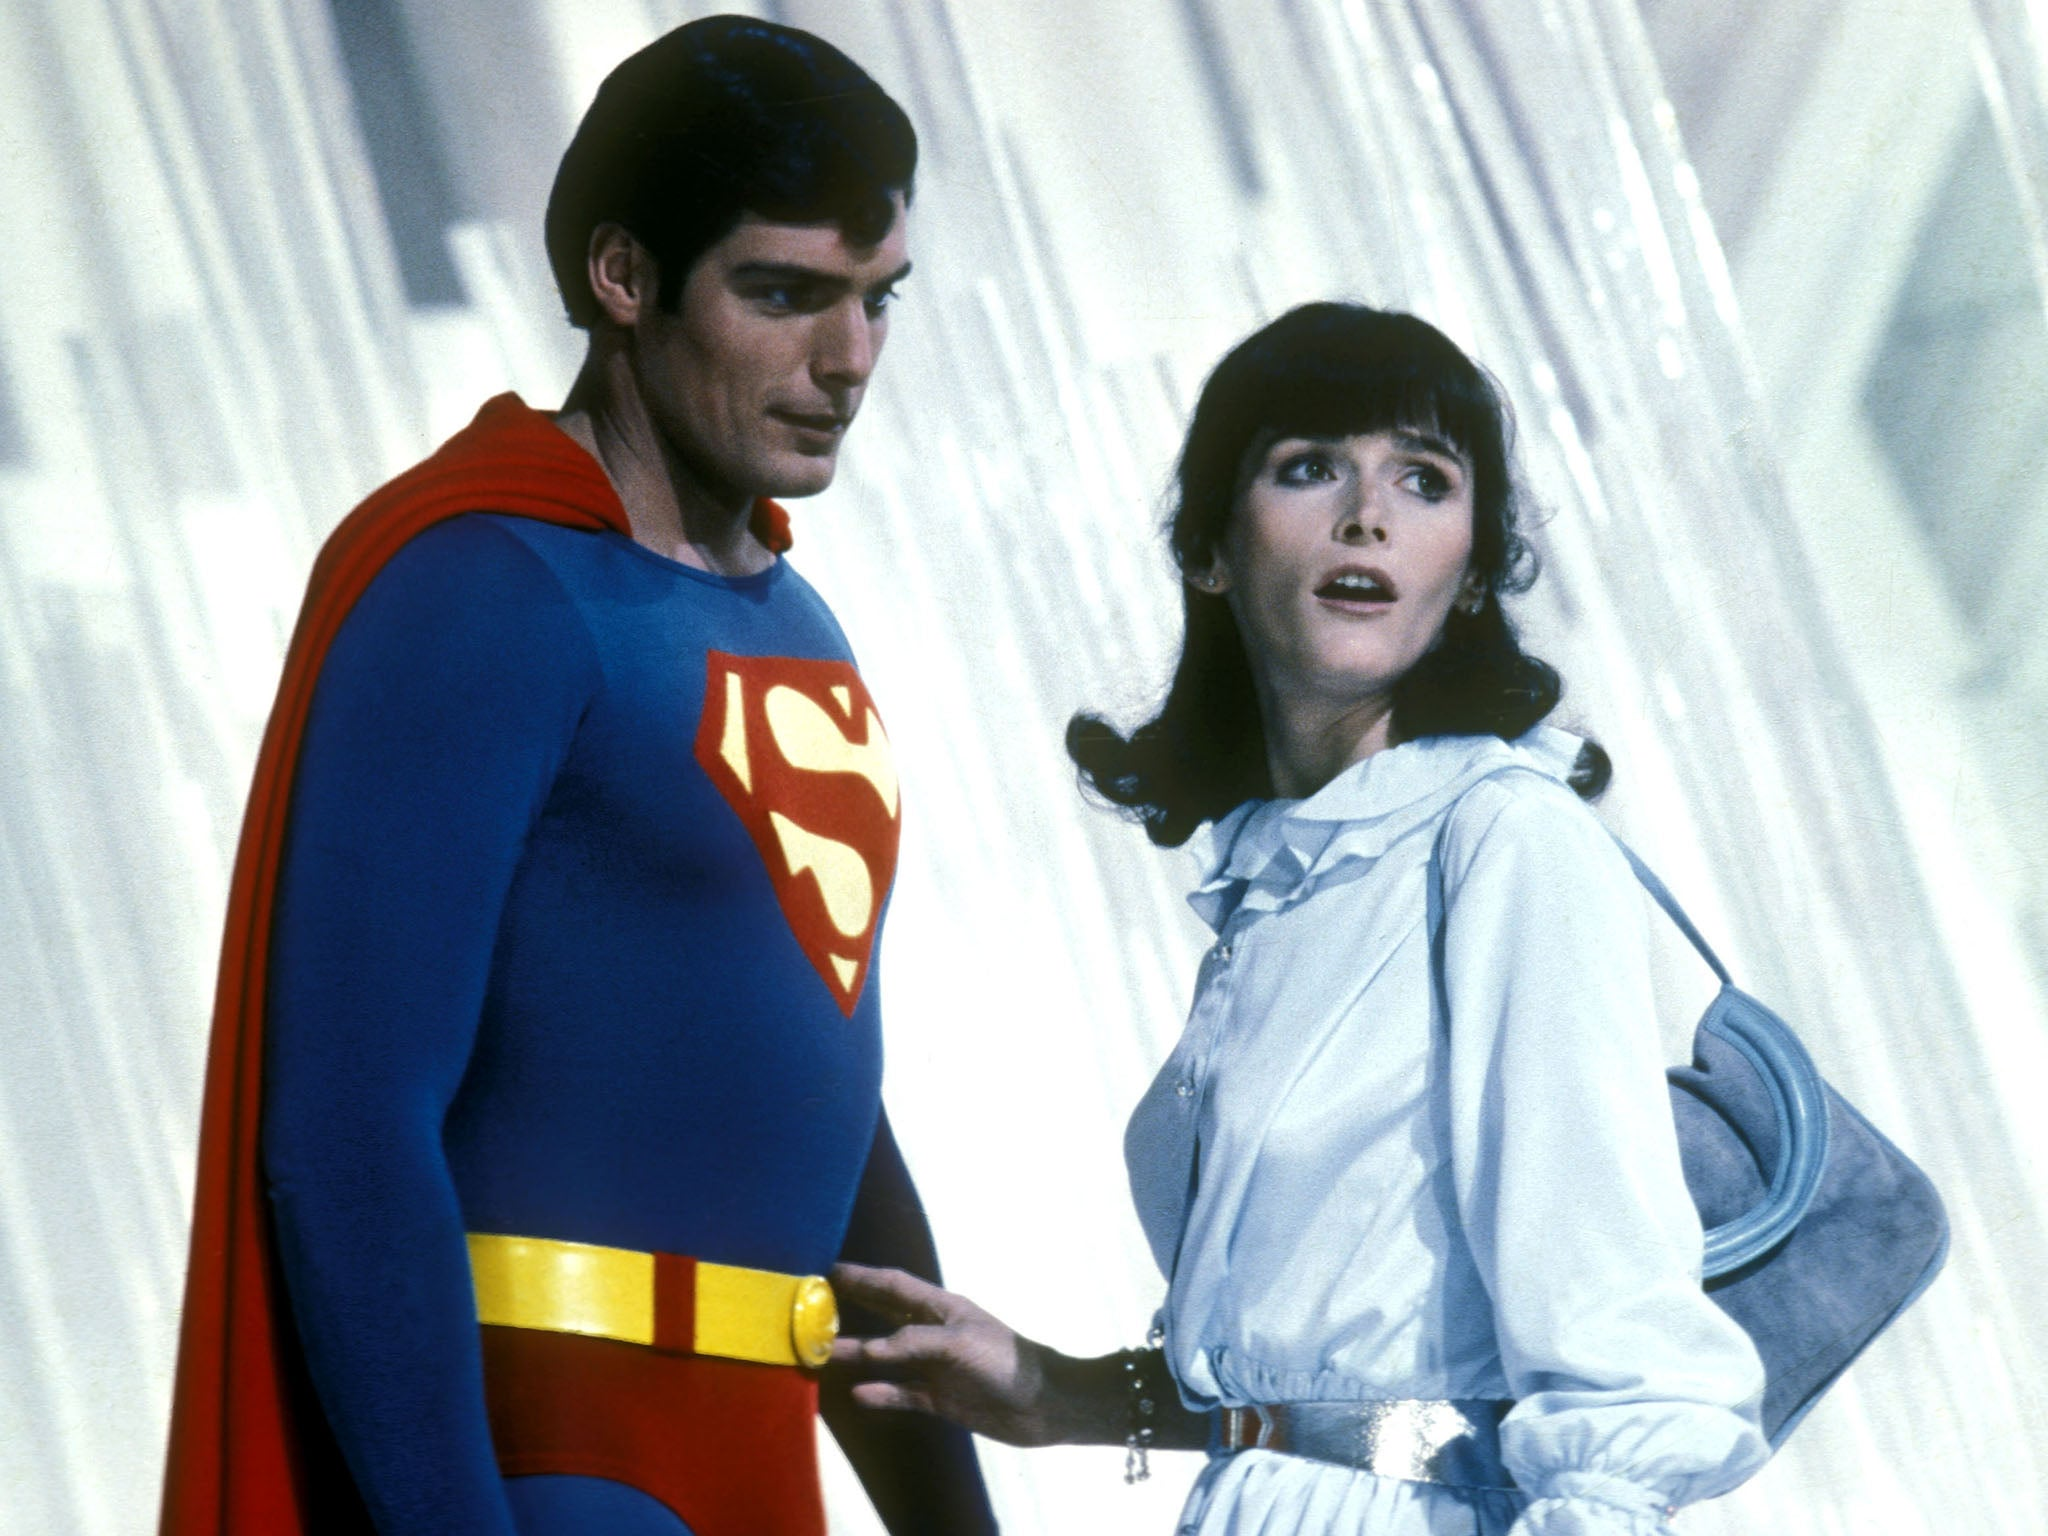 Margot Kidder: Actor who played Lois Lane opposite Christopher Reeve in Superman films